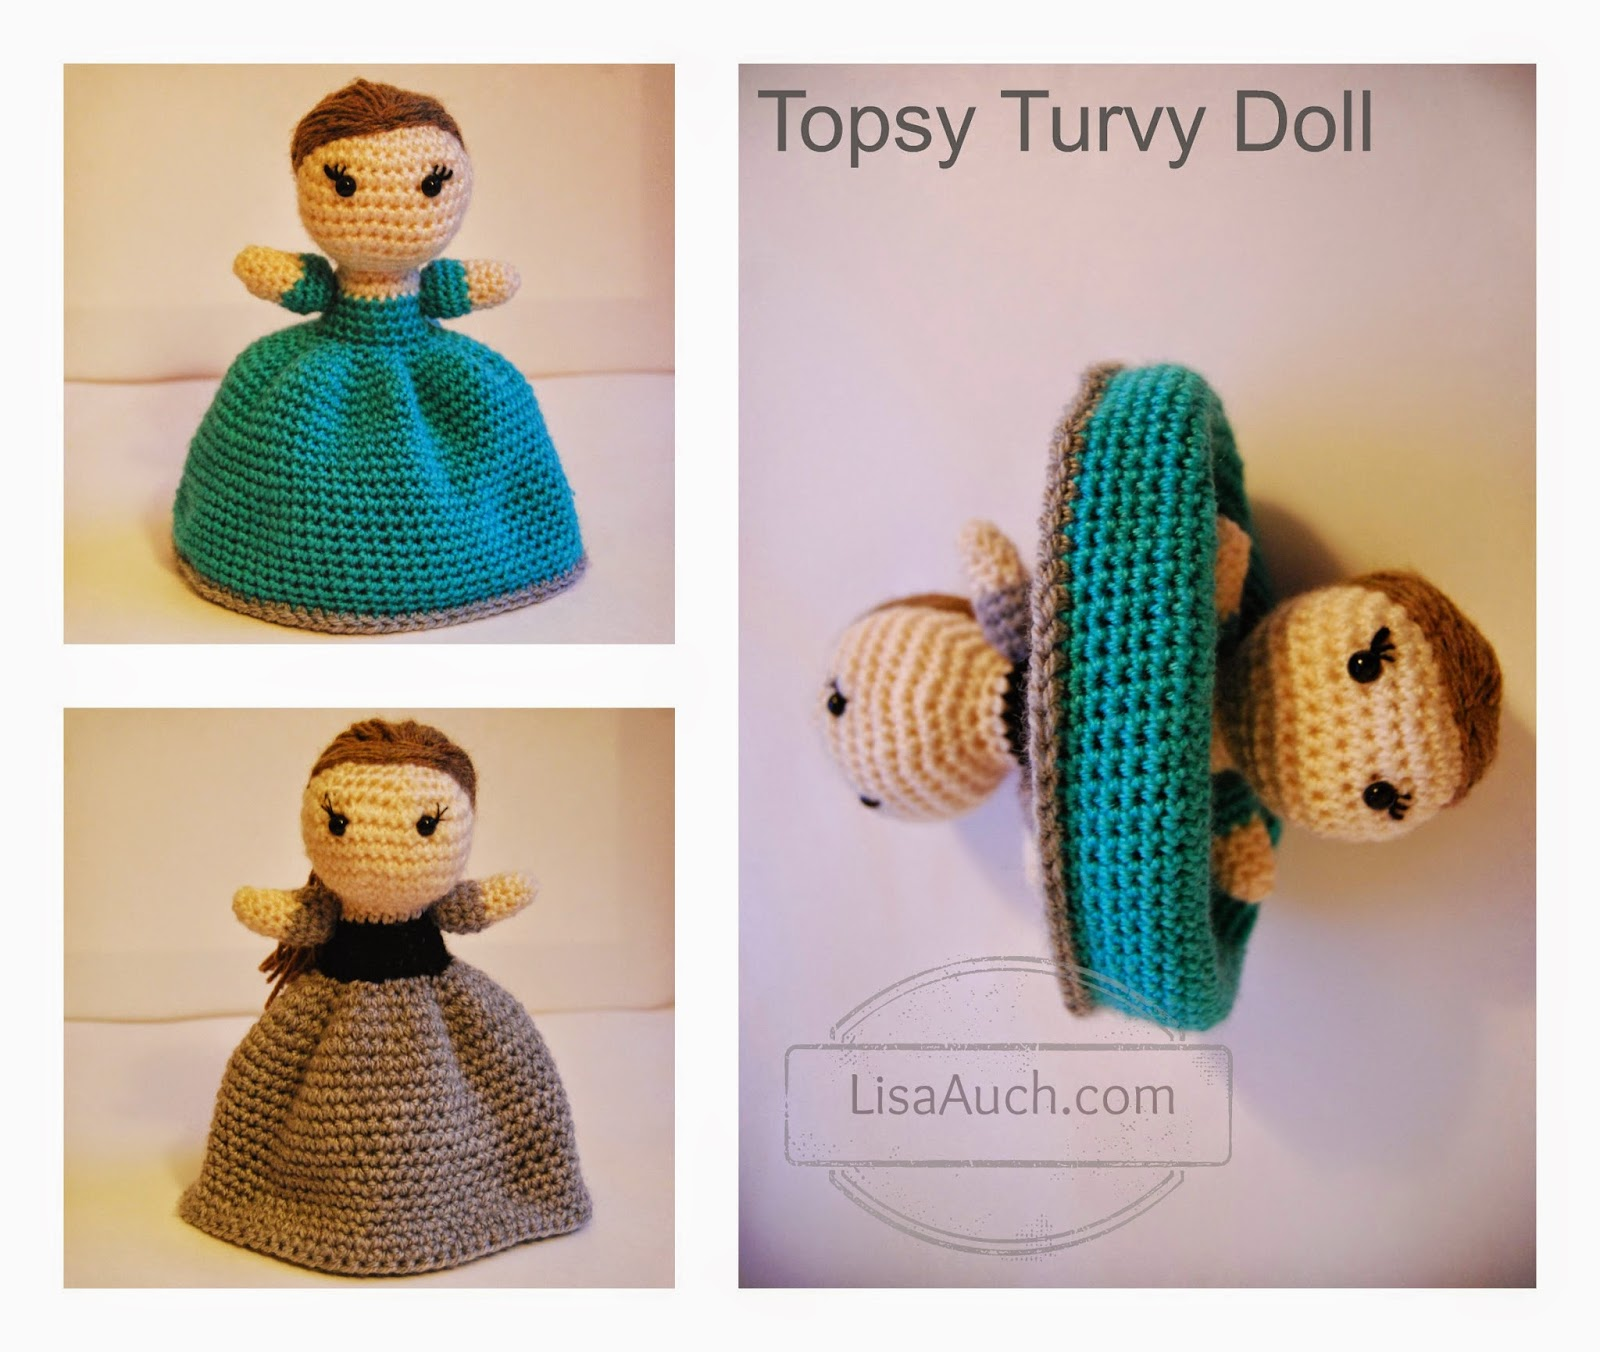 Toys To Crochet Free Patterns : FREE Crochet Amigurumi Doll Pattern The Original Topsy ...